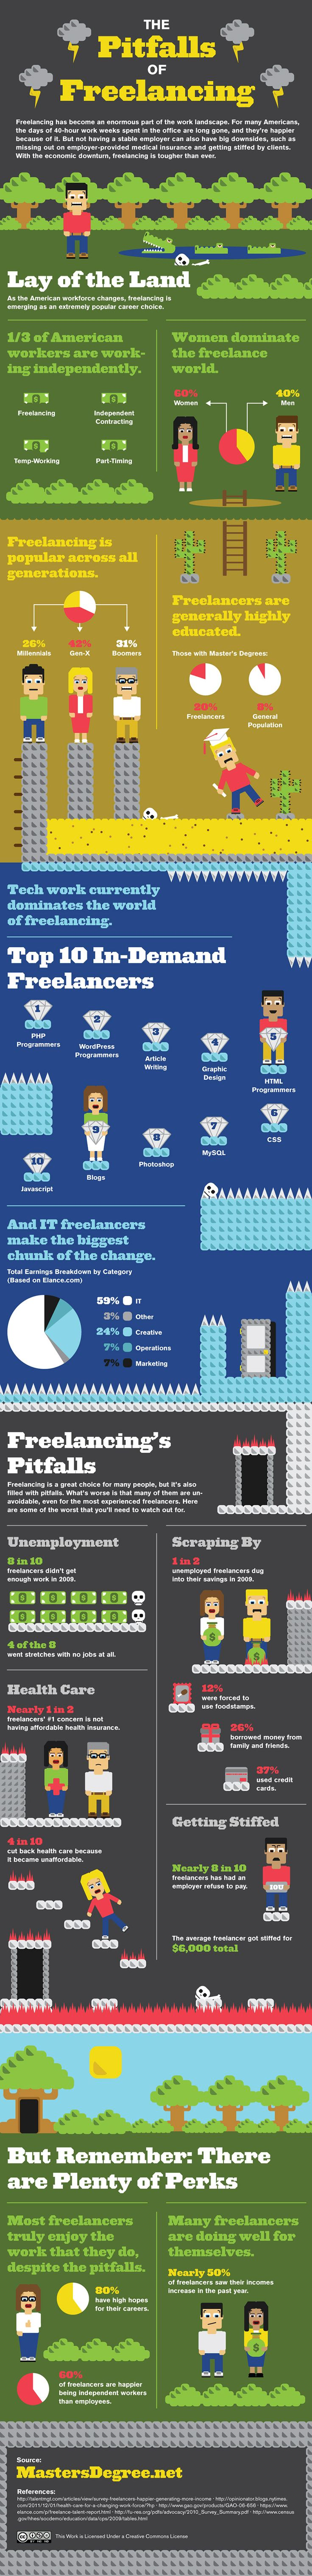 The Pitfalls of Freelancing.Freelance Life, Freelance Infographic, Social Media, Pitfall, Graphics Design, Infographic Career, Writing Job, Medium, Business Infographic